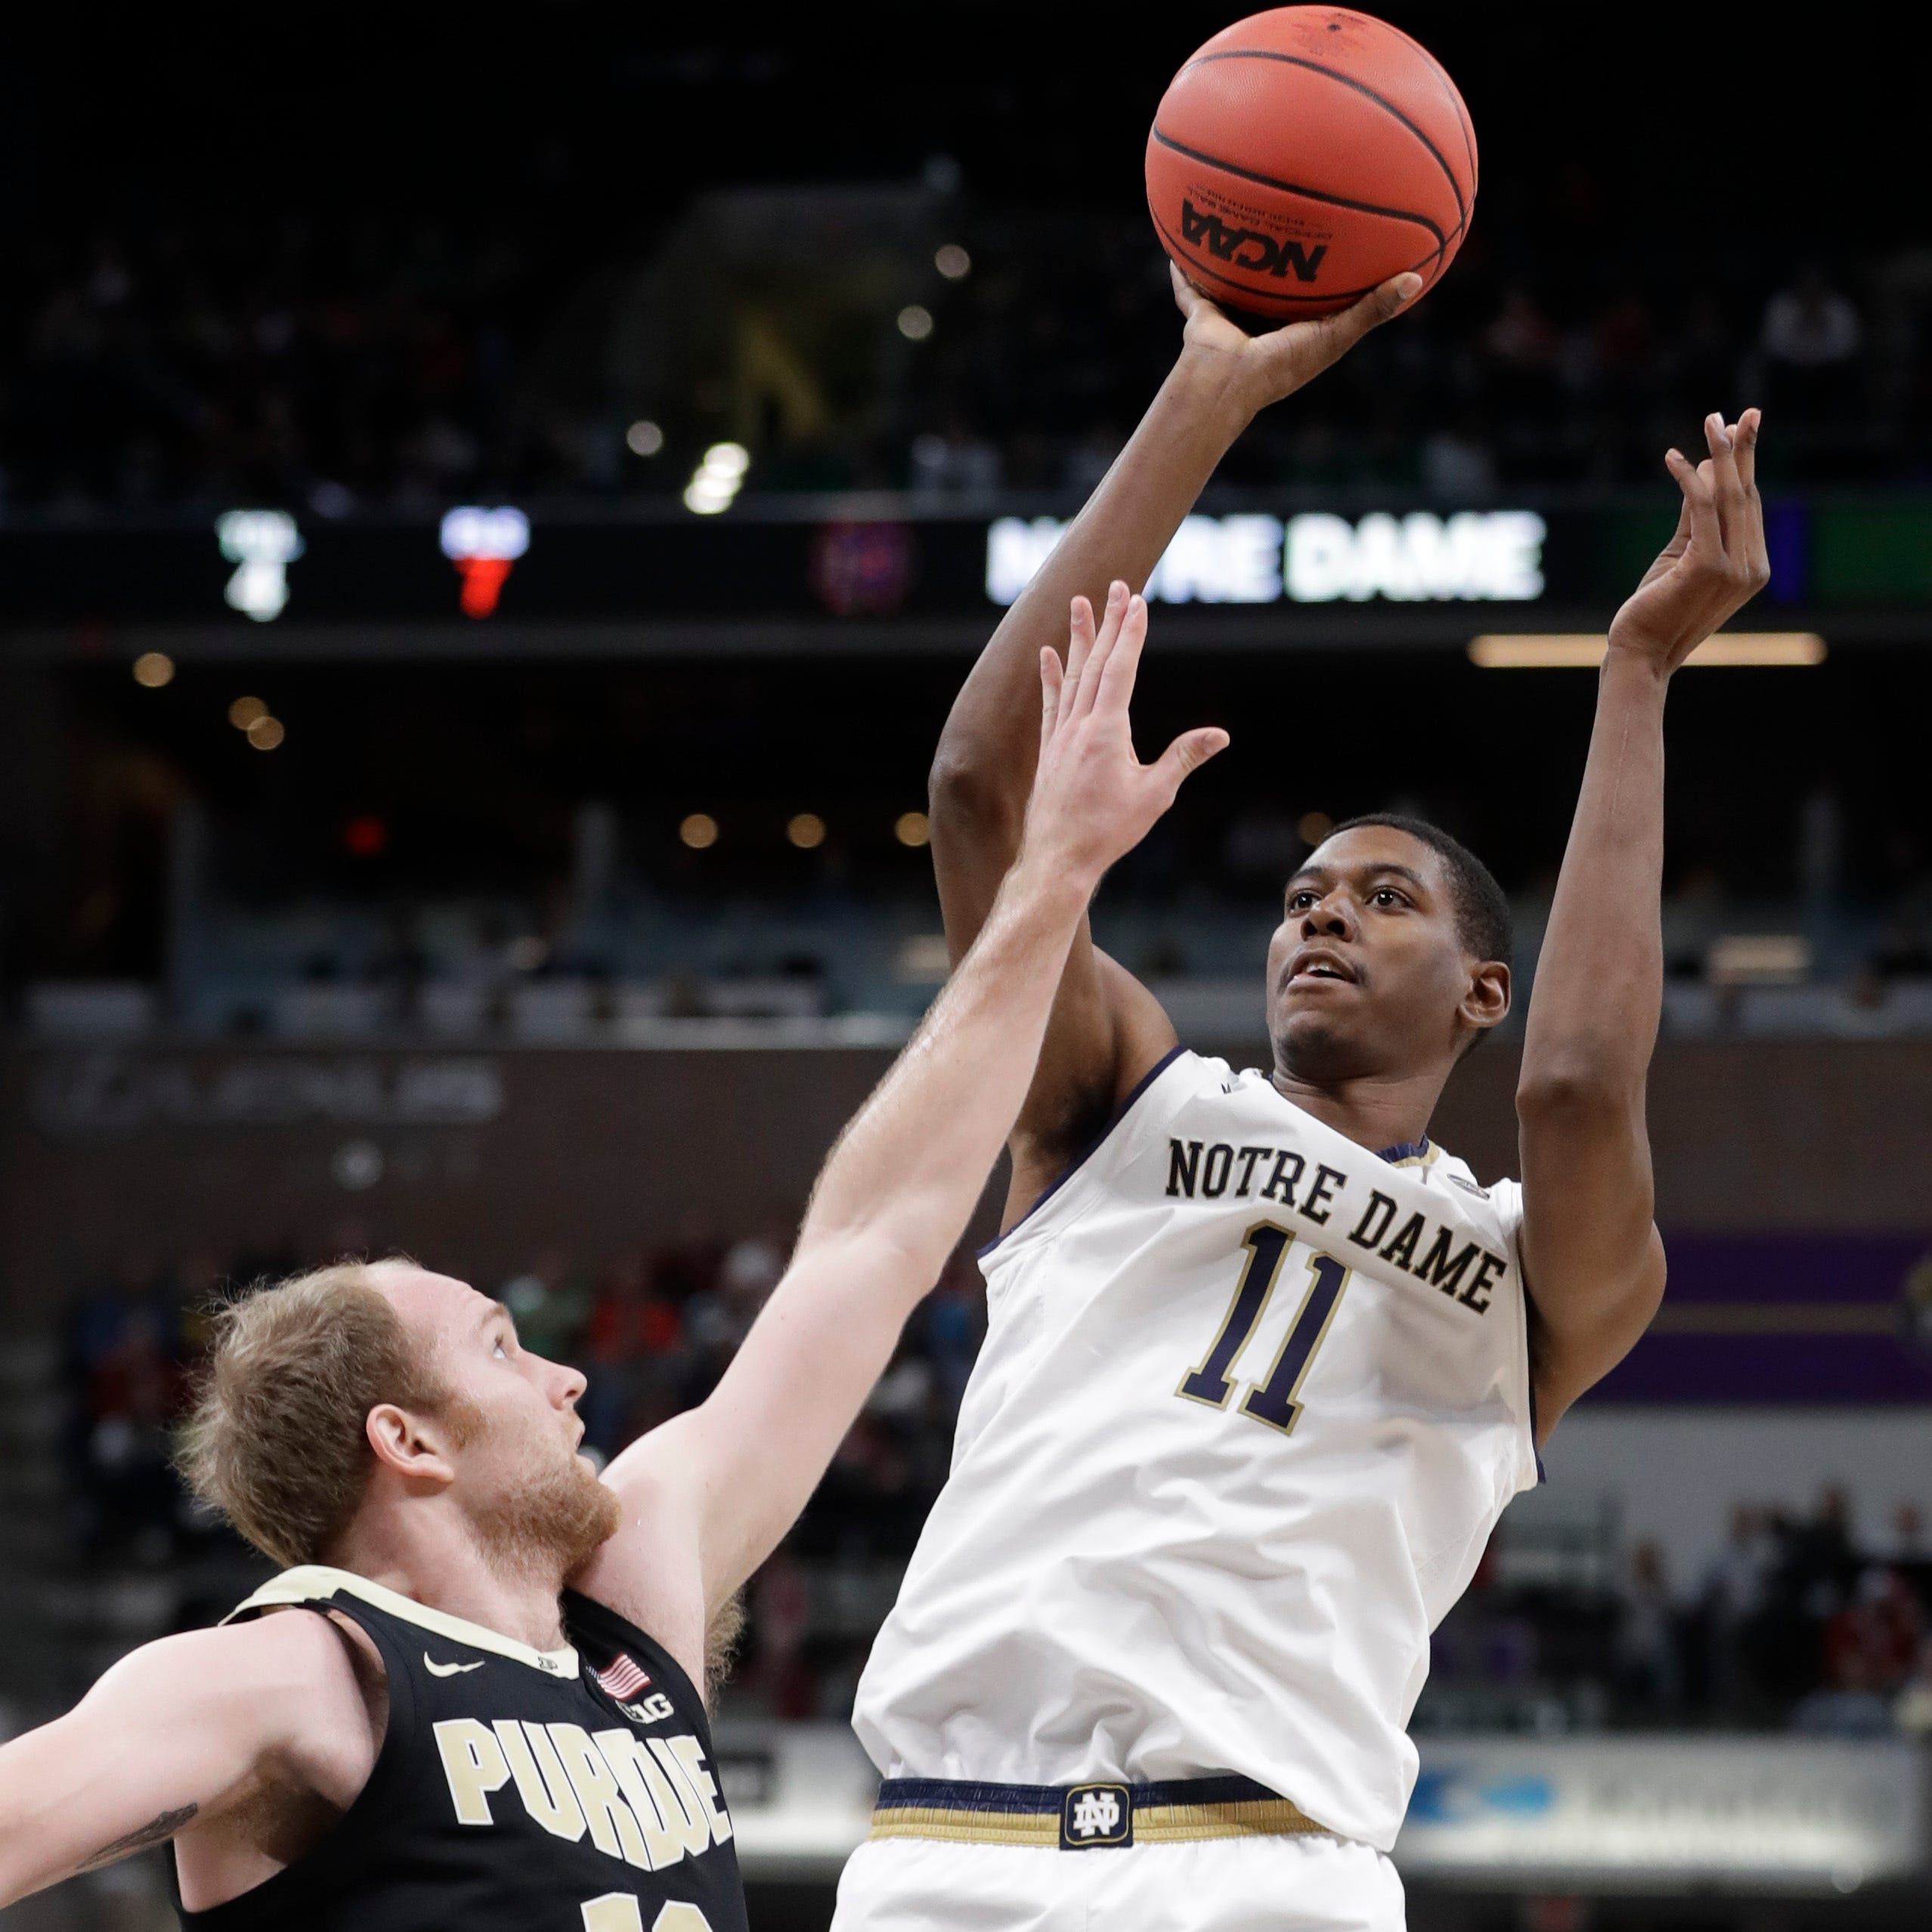 Purdue basketball falls to Notre Dame in Crossroads Classic to extend road woes